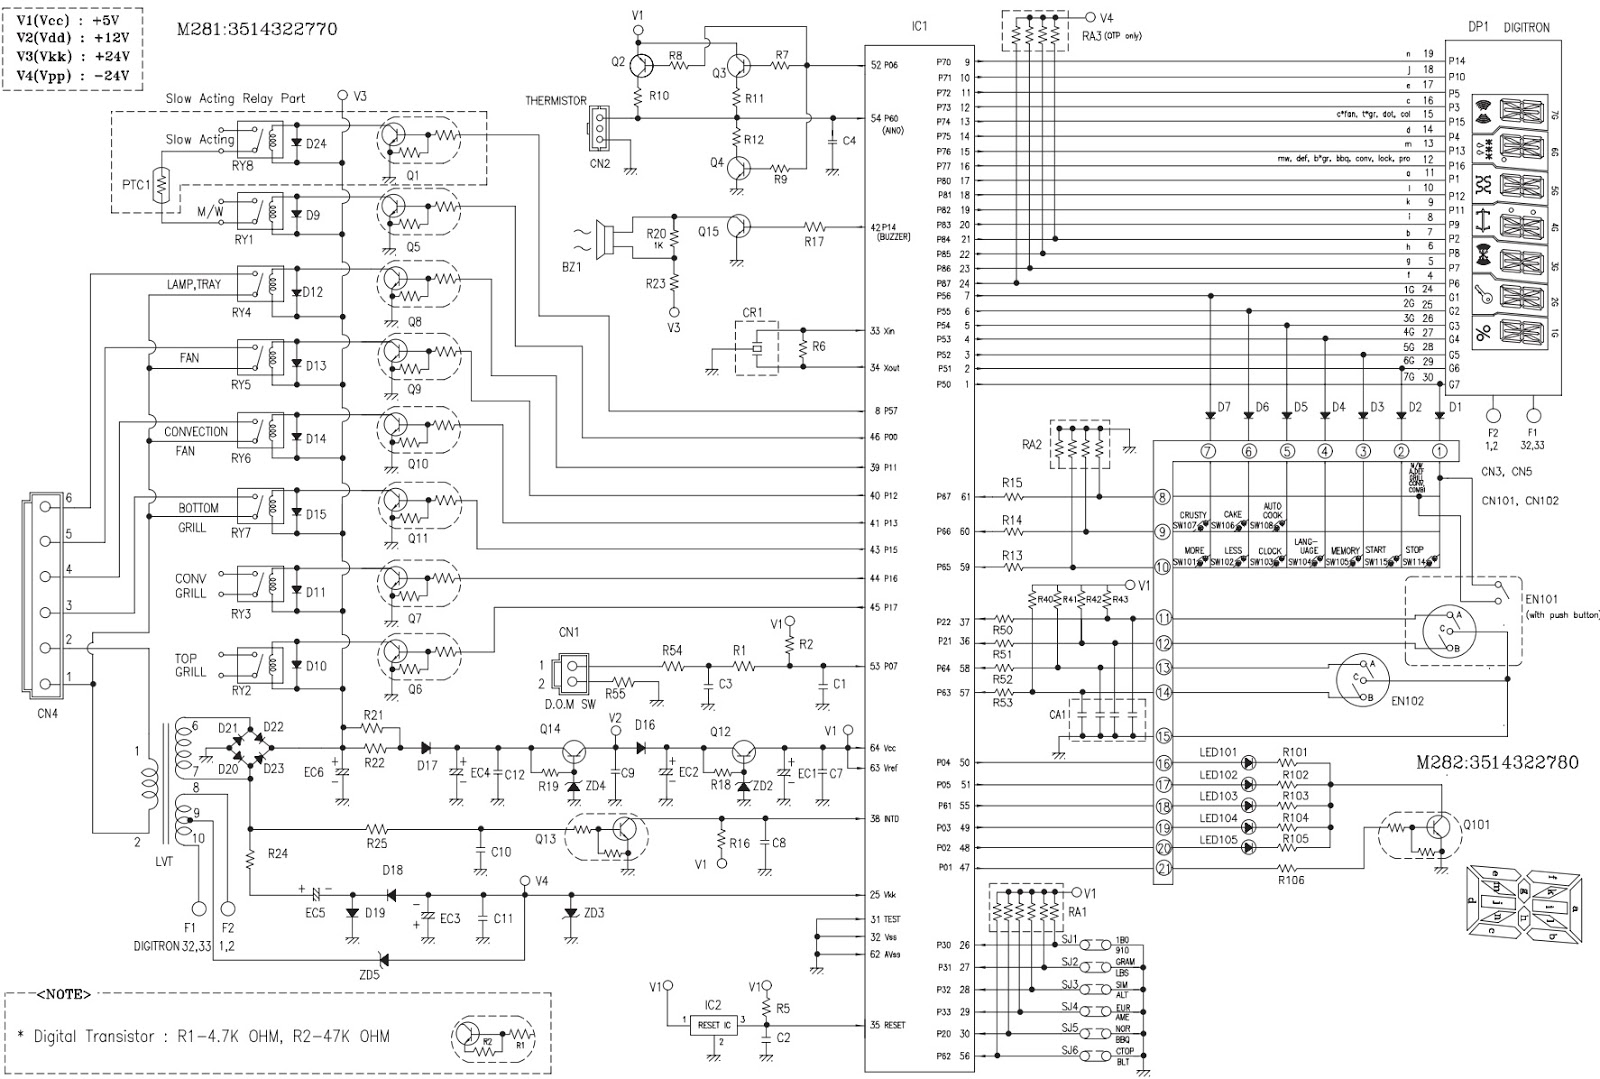 swchematic 1 daewoo koc 1b5k9a27 microwave oven tests circuit diagram daewoo microwave wiring diagram at gsmportal.co